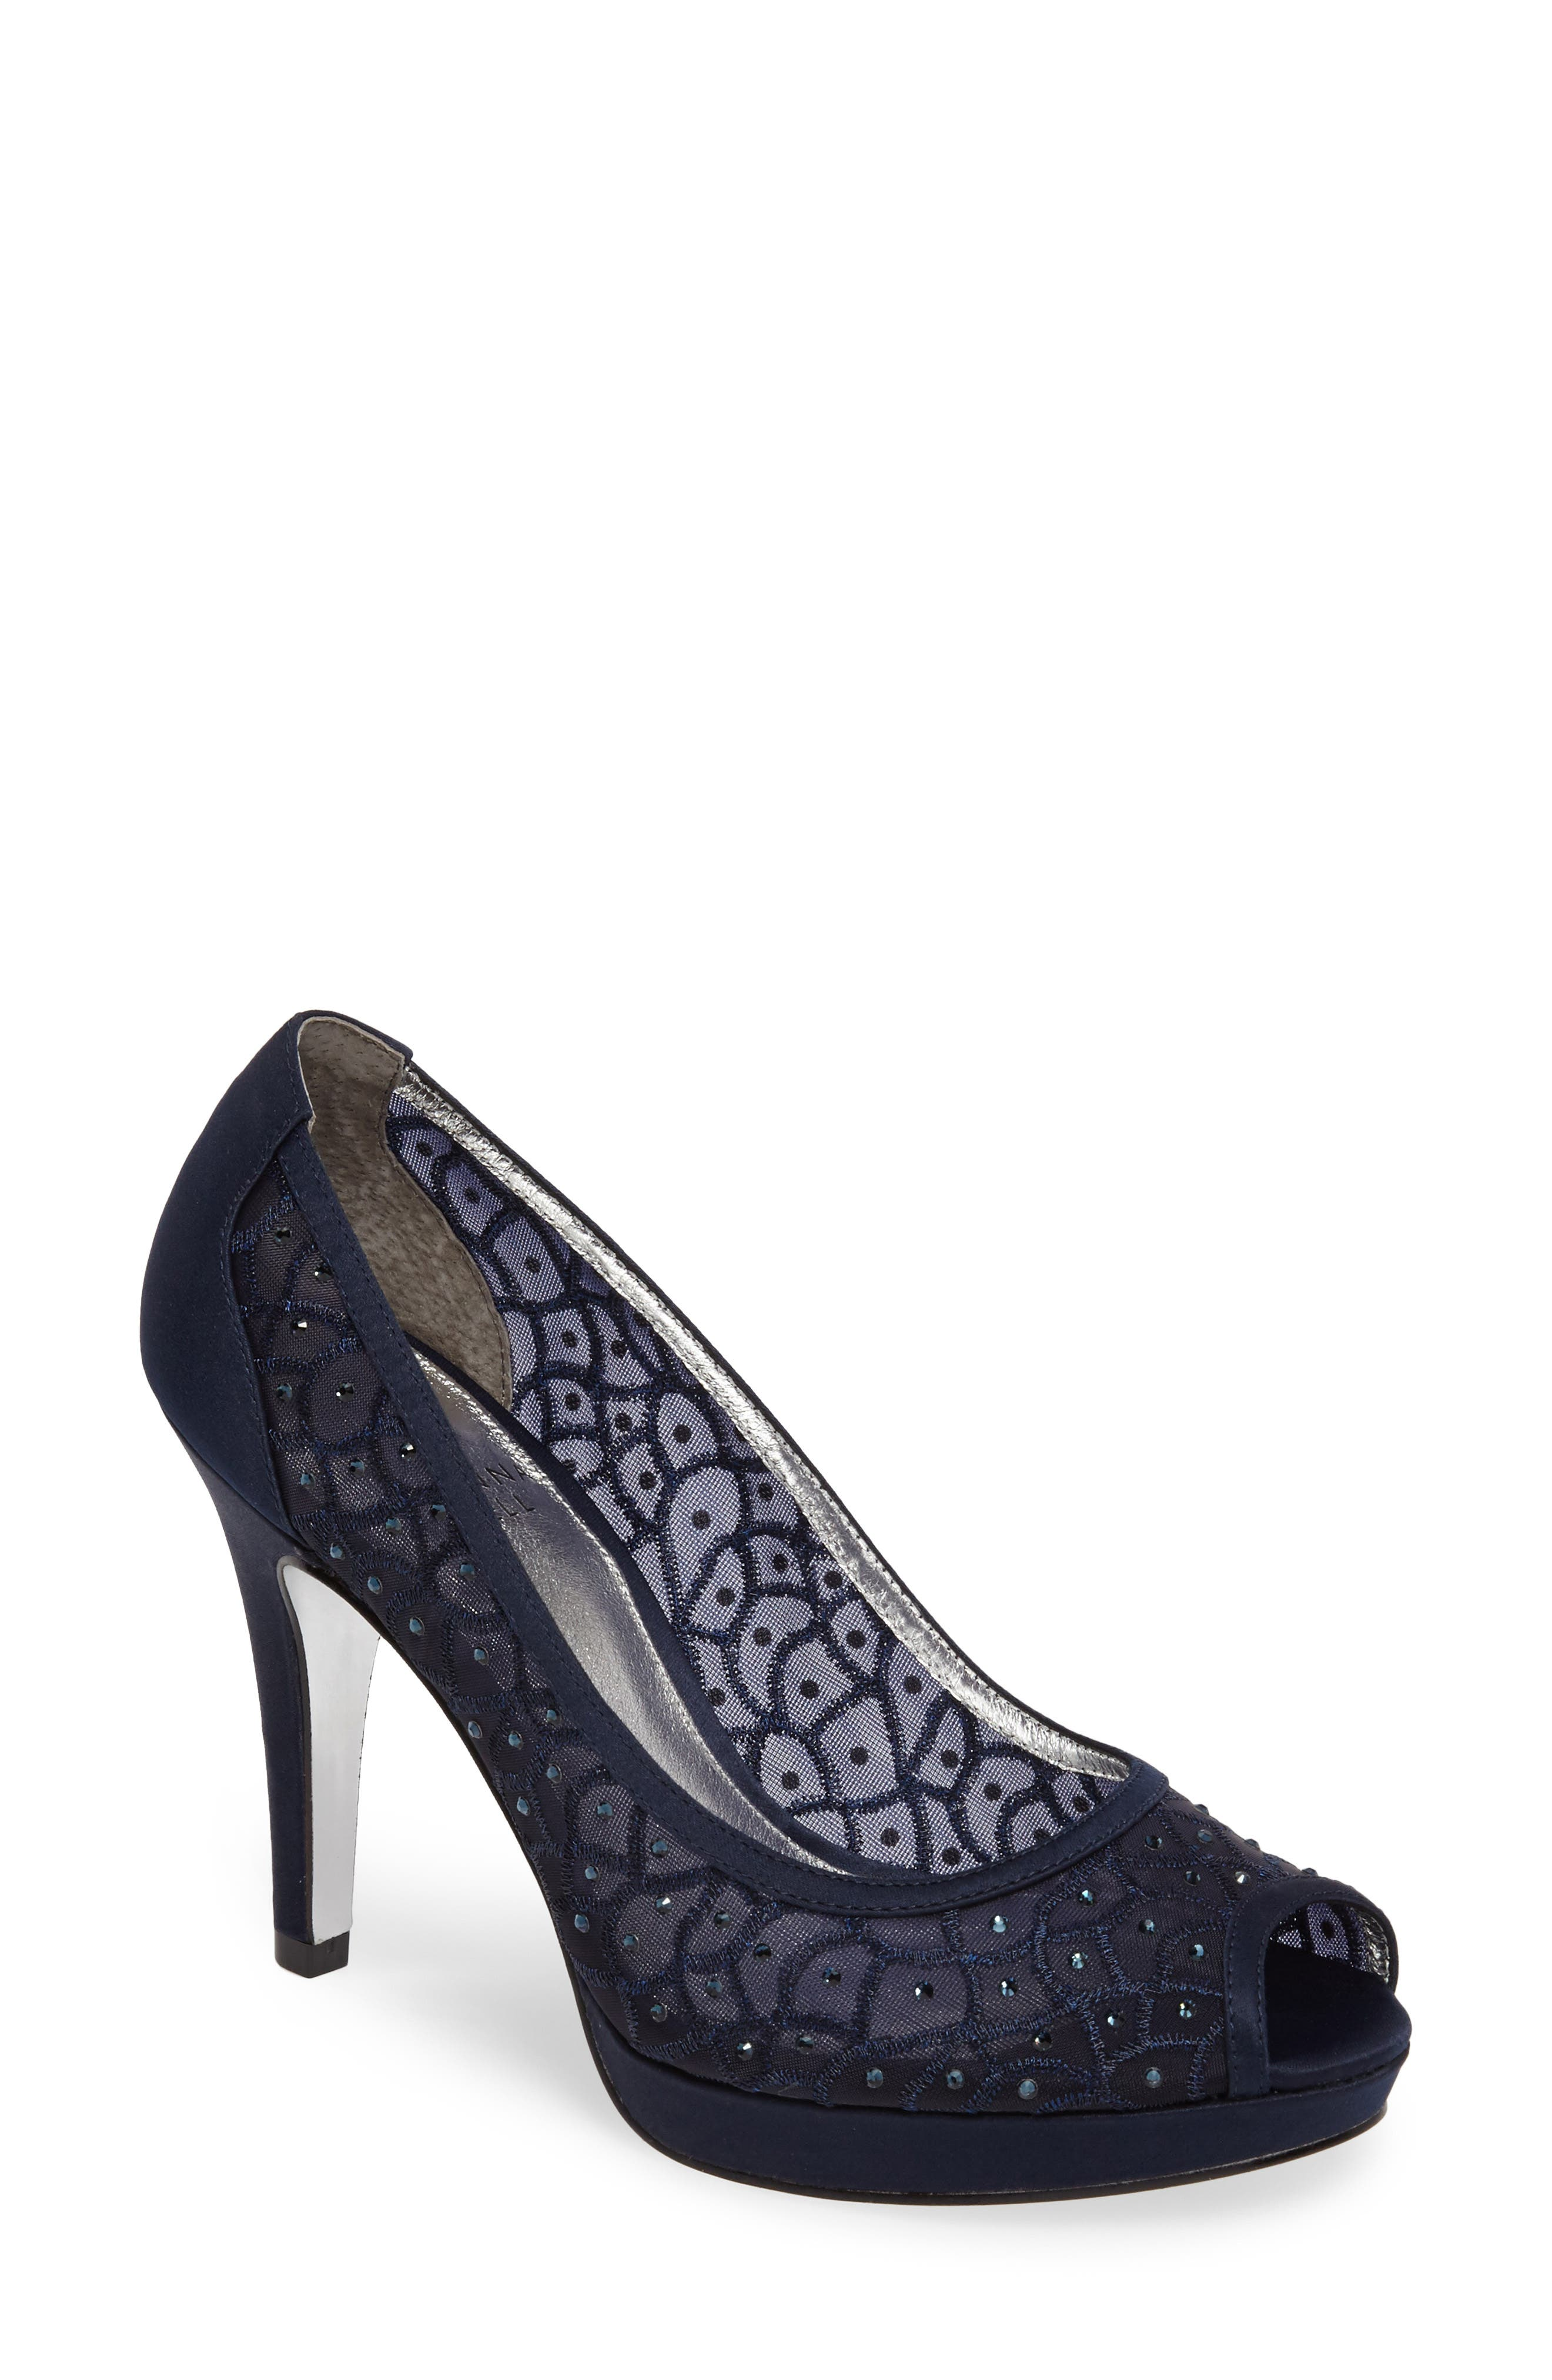 'Foxy' Crystal Embellished Peeptoe Pump,                         Main,                         color, NAVY SATIN